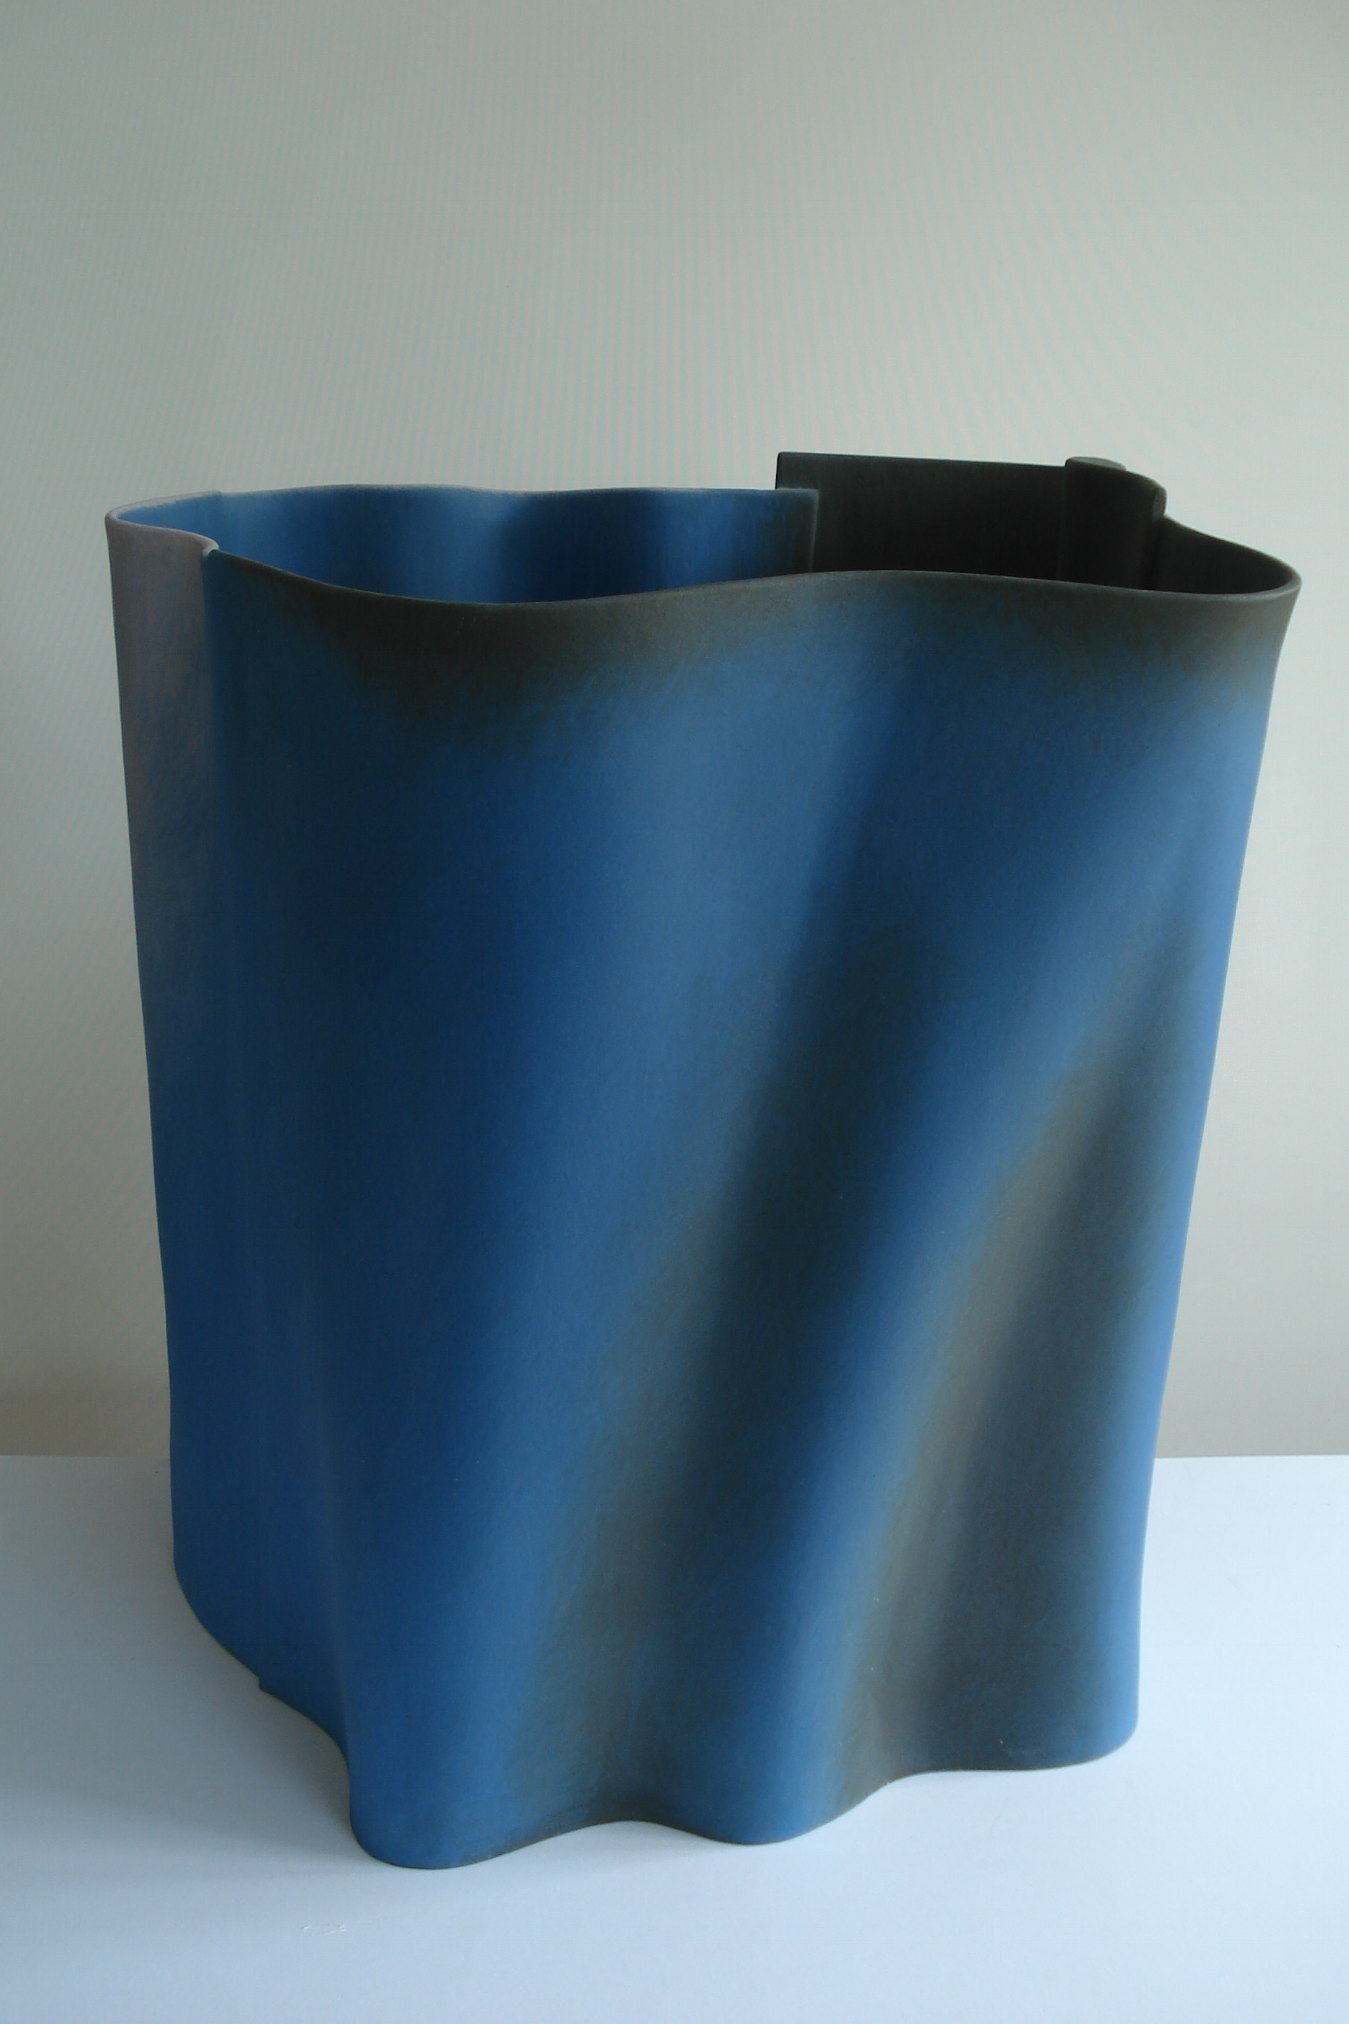 Chesapeake Bay, 2005, 62cm high